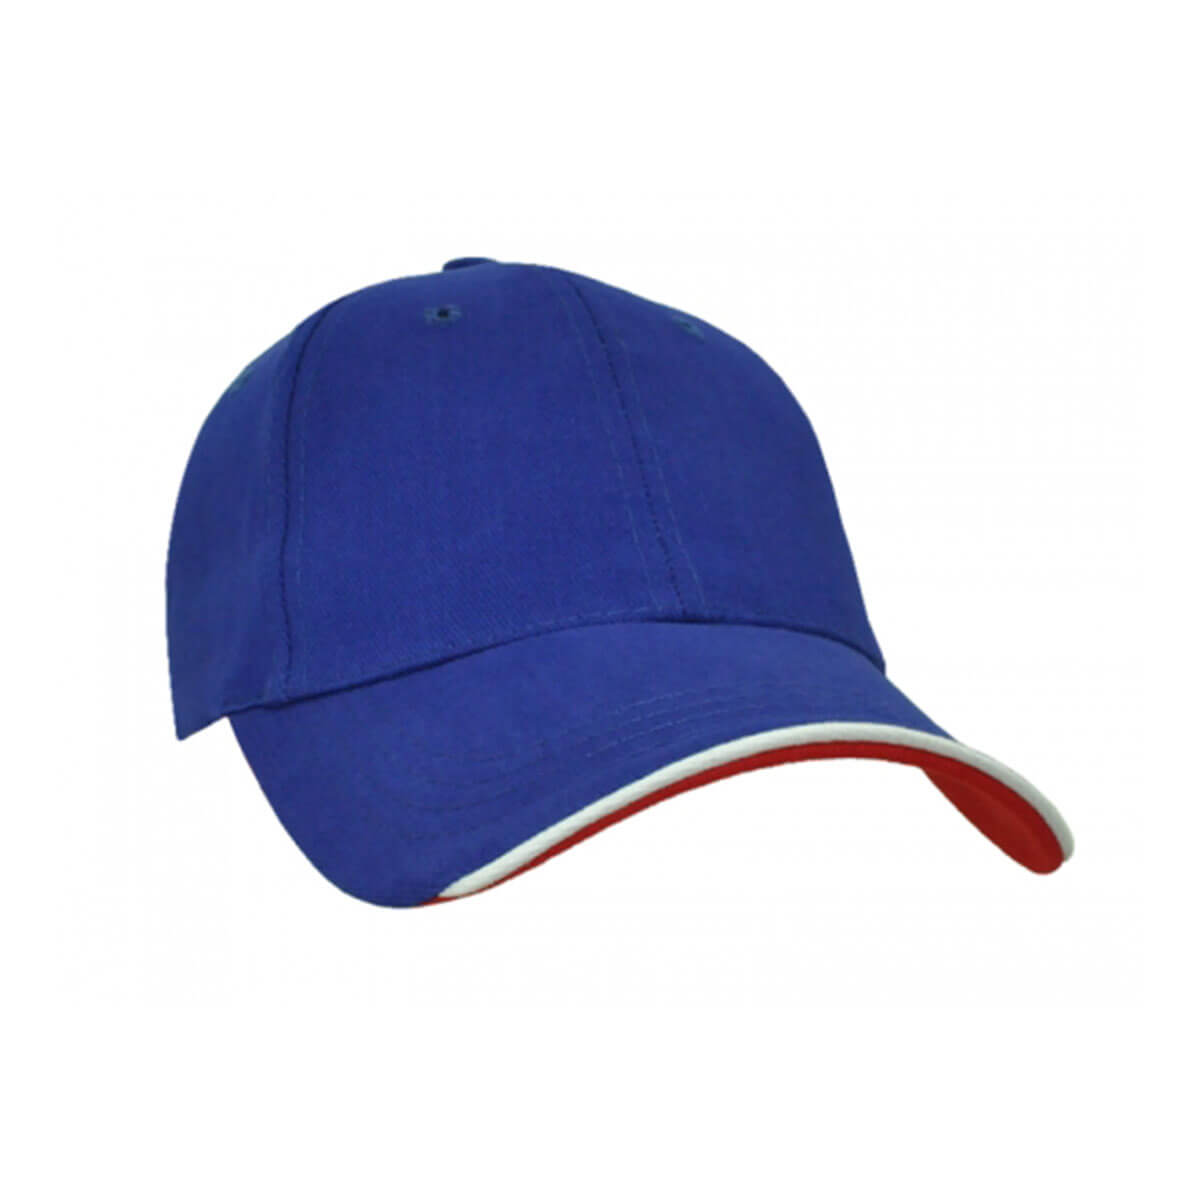 Navigator Cap-Royal / White / Red